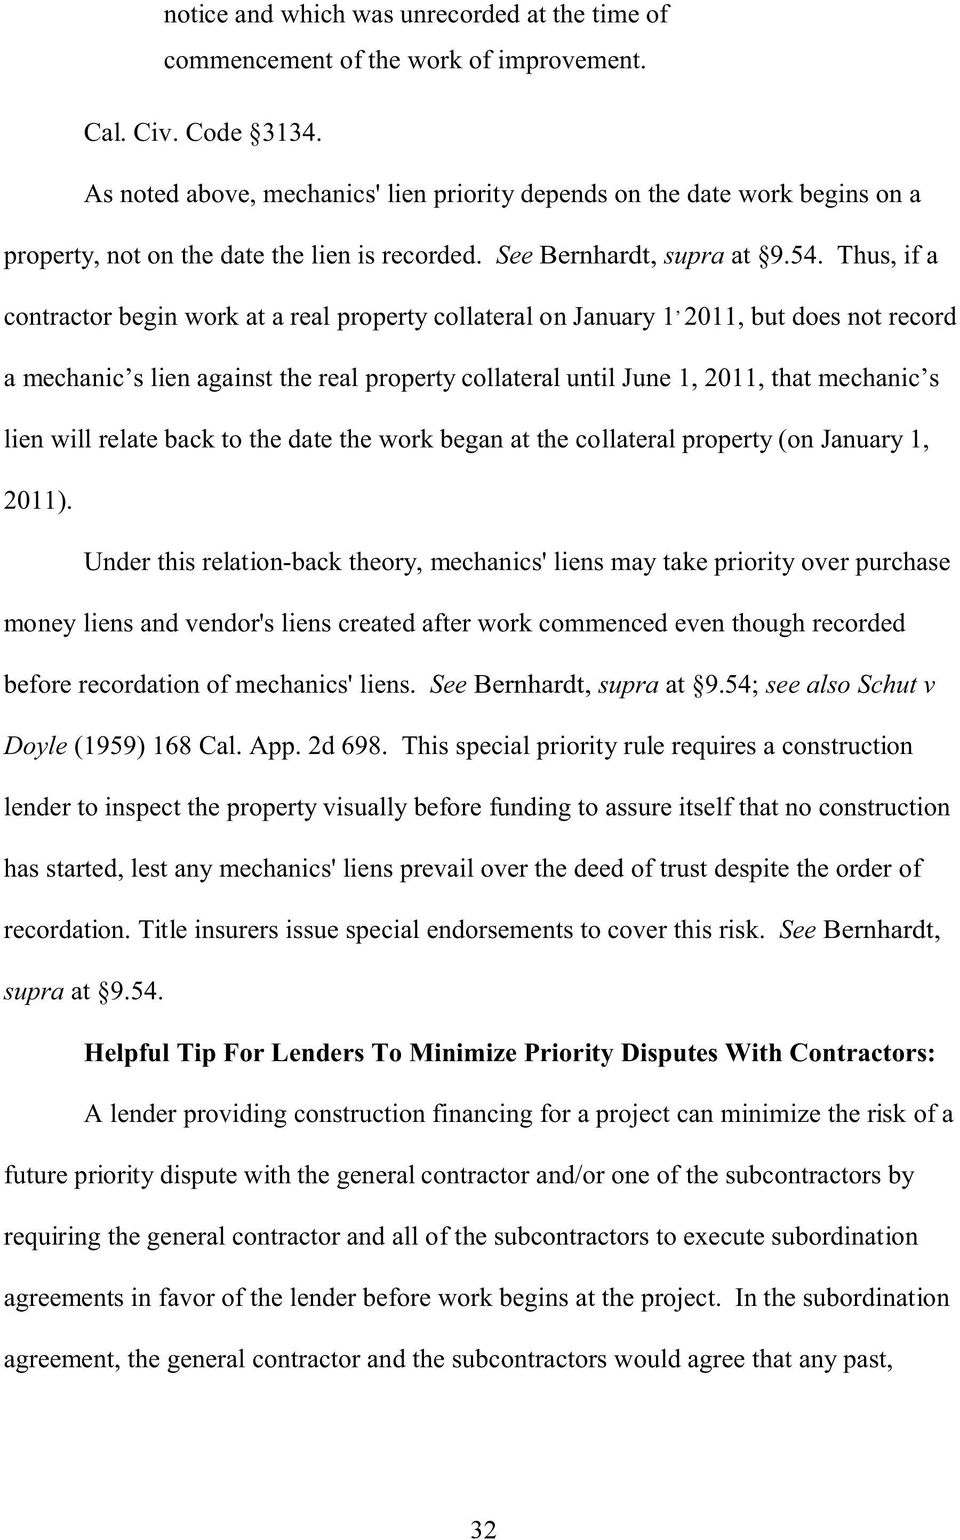 Thus, if a contractor begin work at a real property collateral on January 1, 2011, but does not record a mechanic s lien against the real property collateral until June 1, 2011, that mechanic s lien